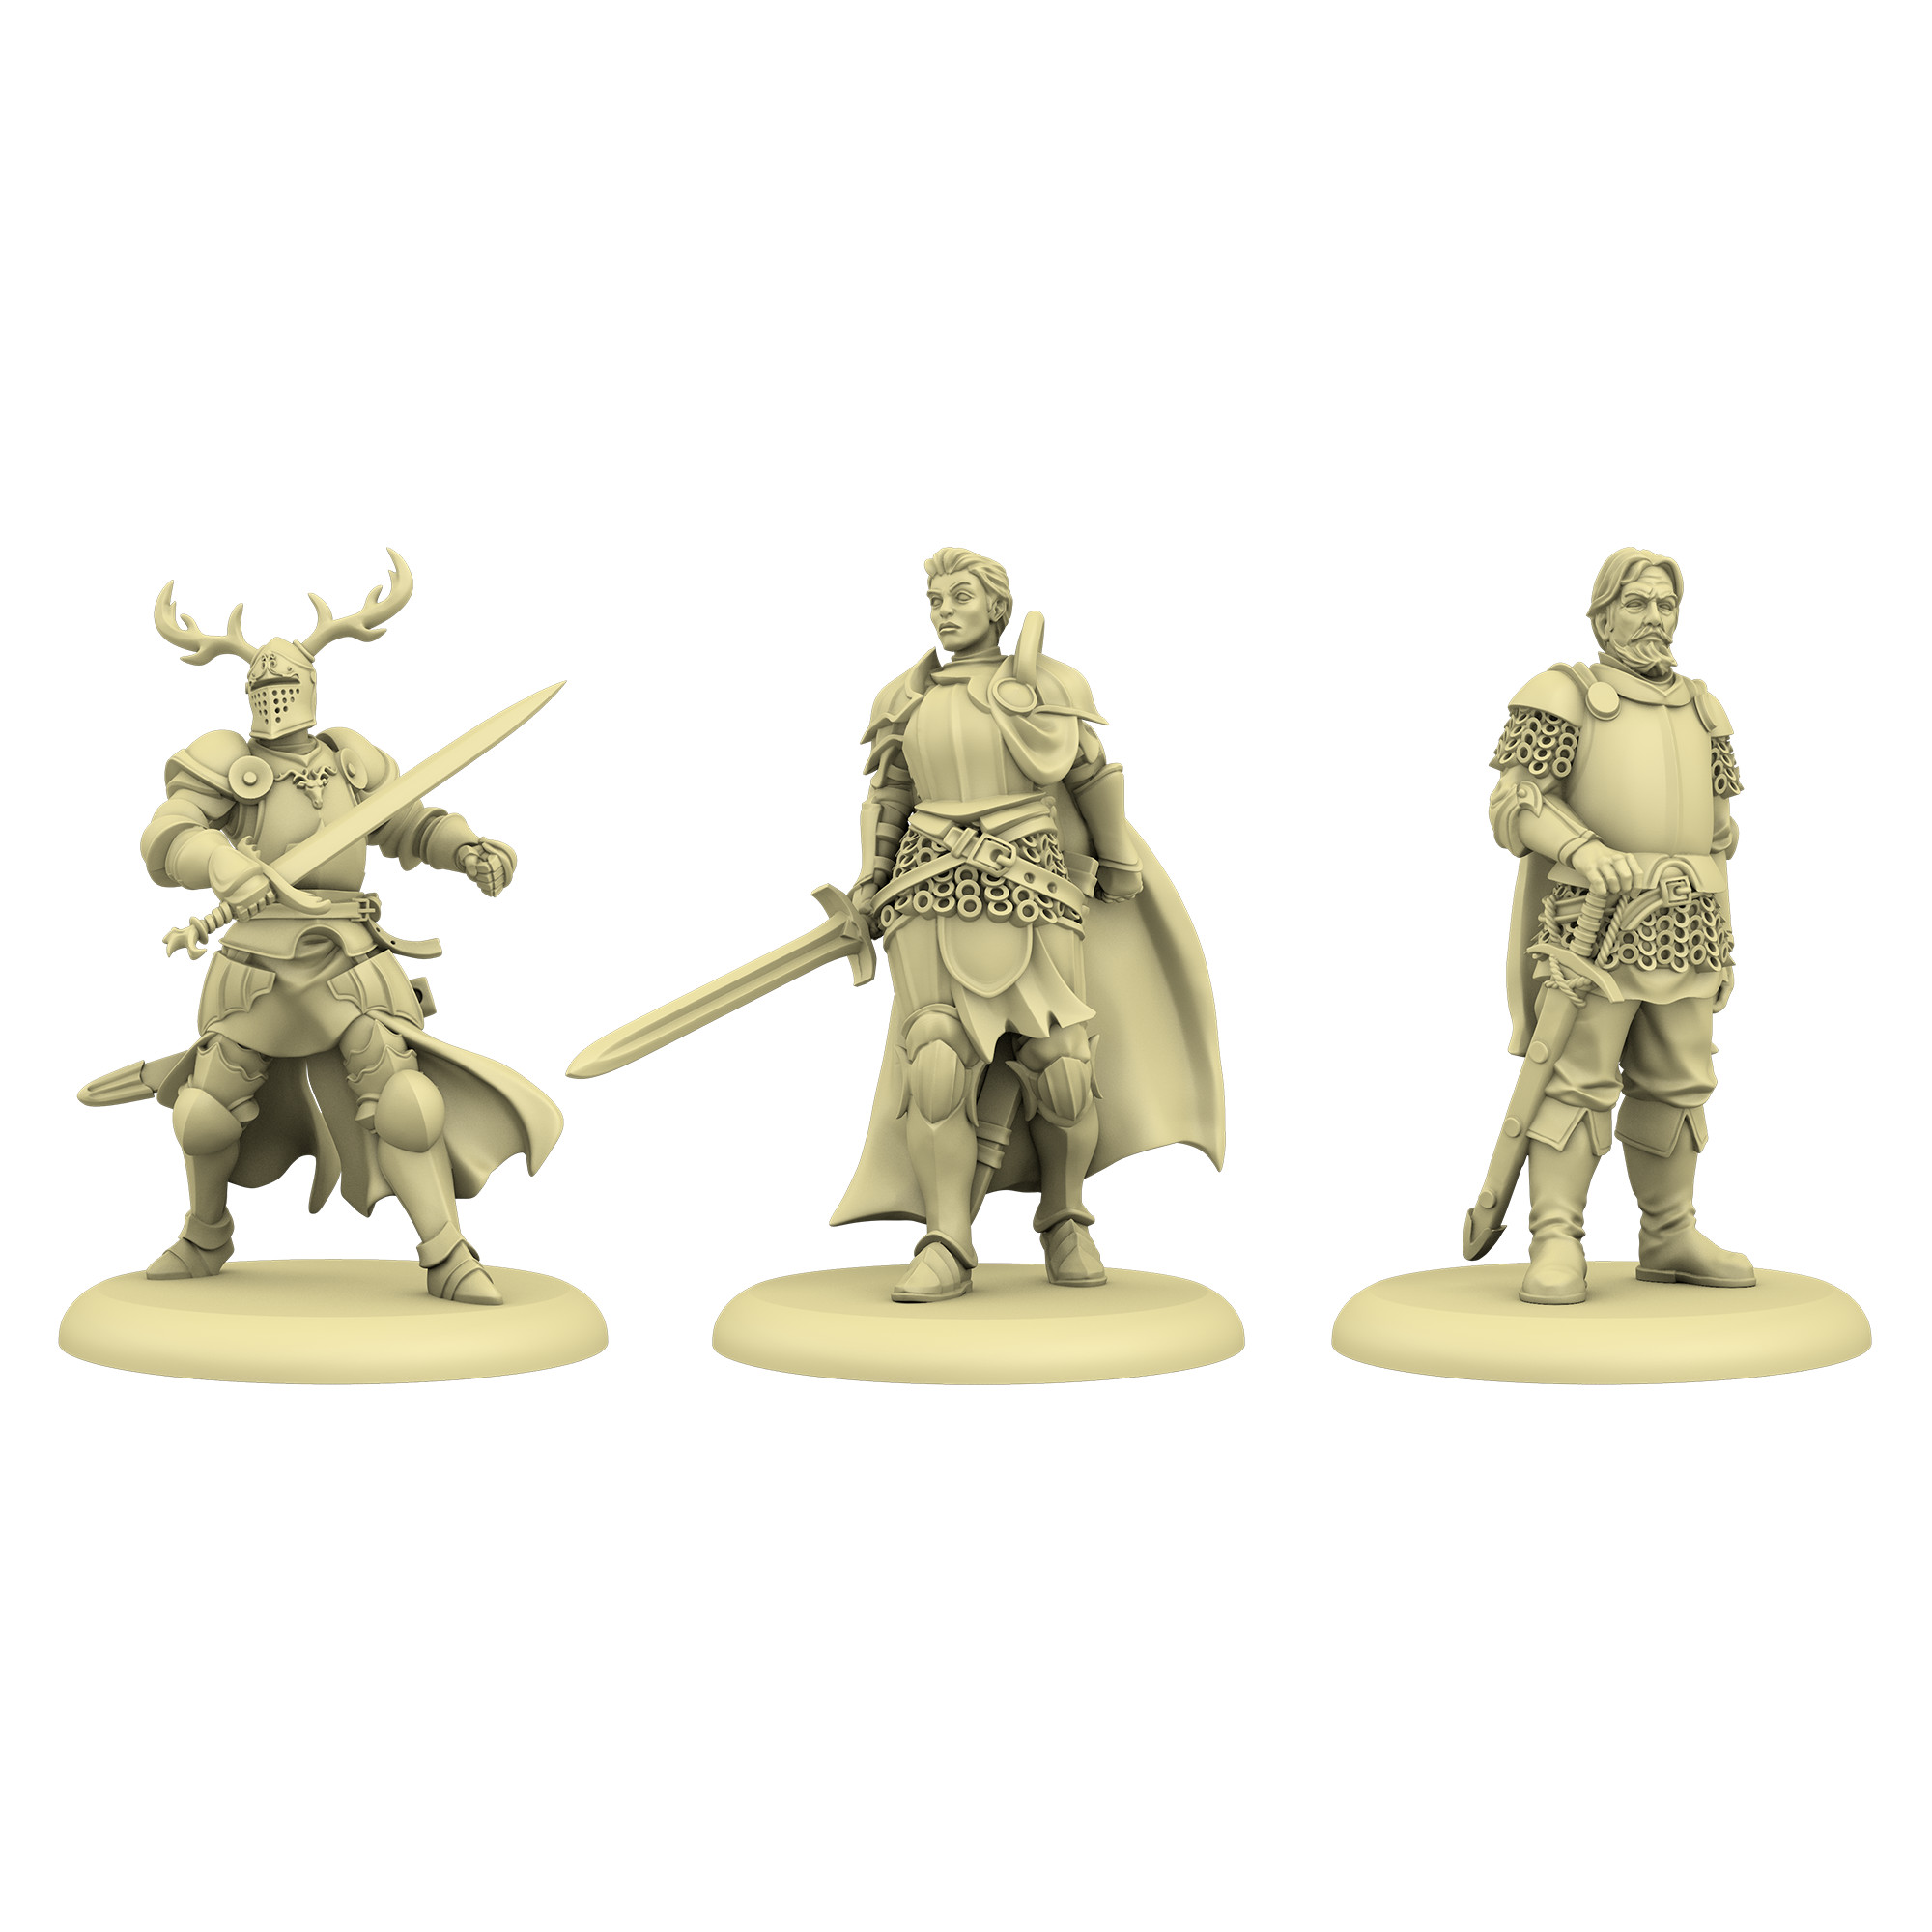 A Song of Ice & Fire: Baratheon Heroes Box 2